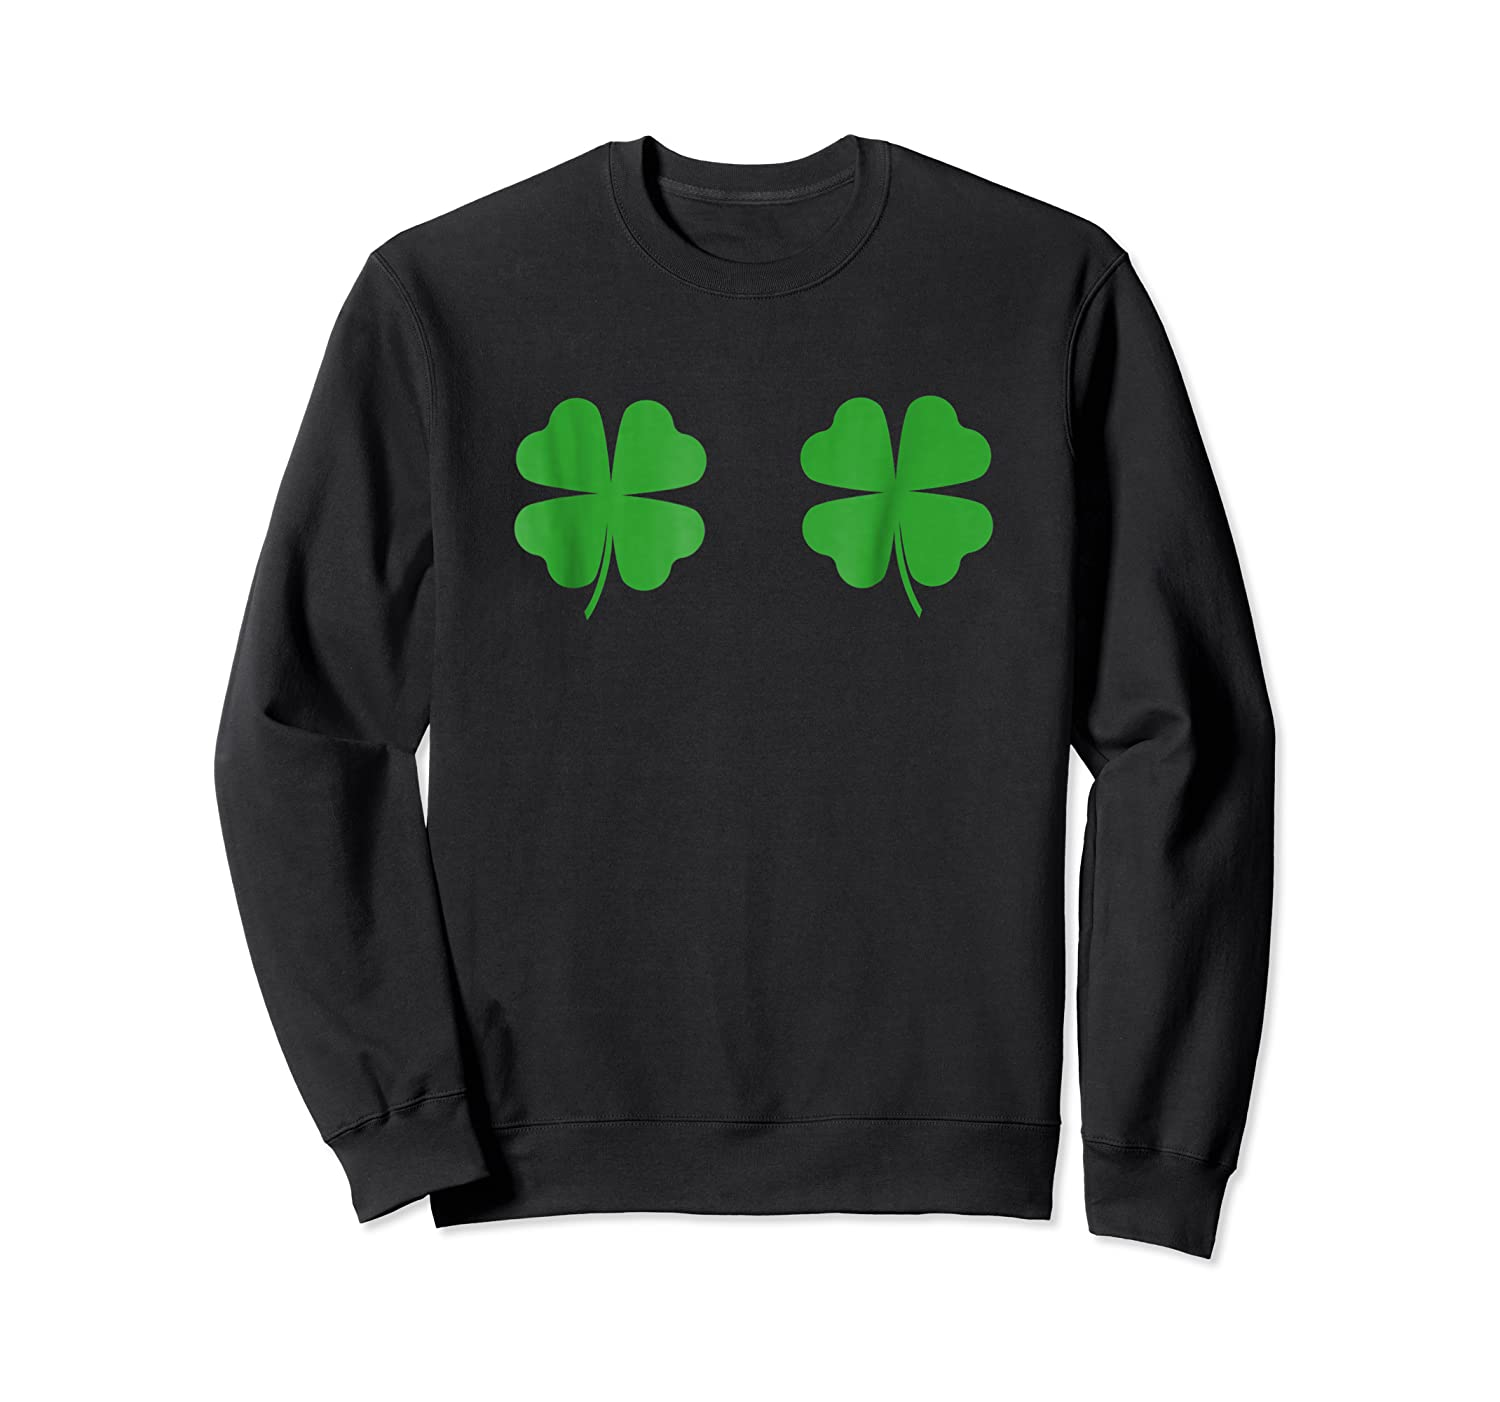 Two Clovers Tshirt Funny St Patrick S Day Boob Shirt Lucky Crewneck Sweater